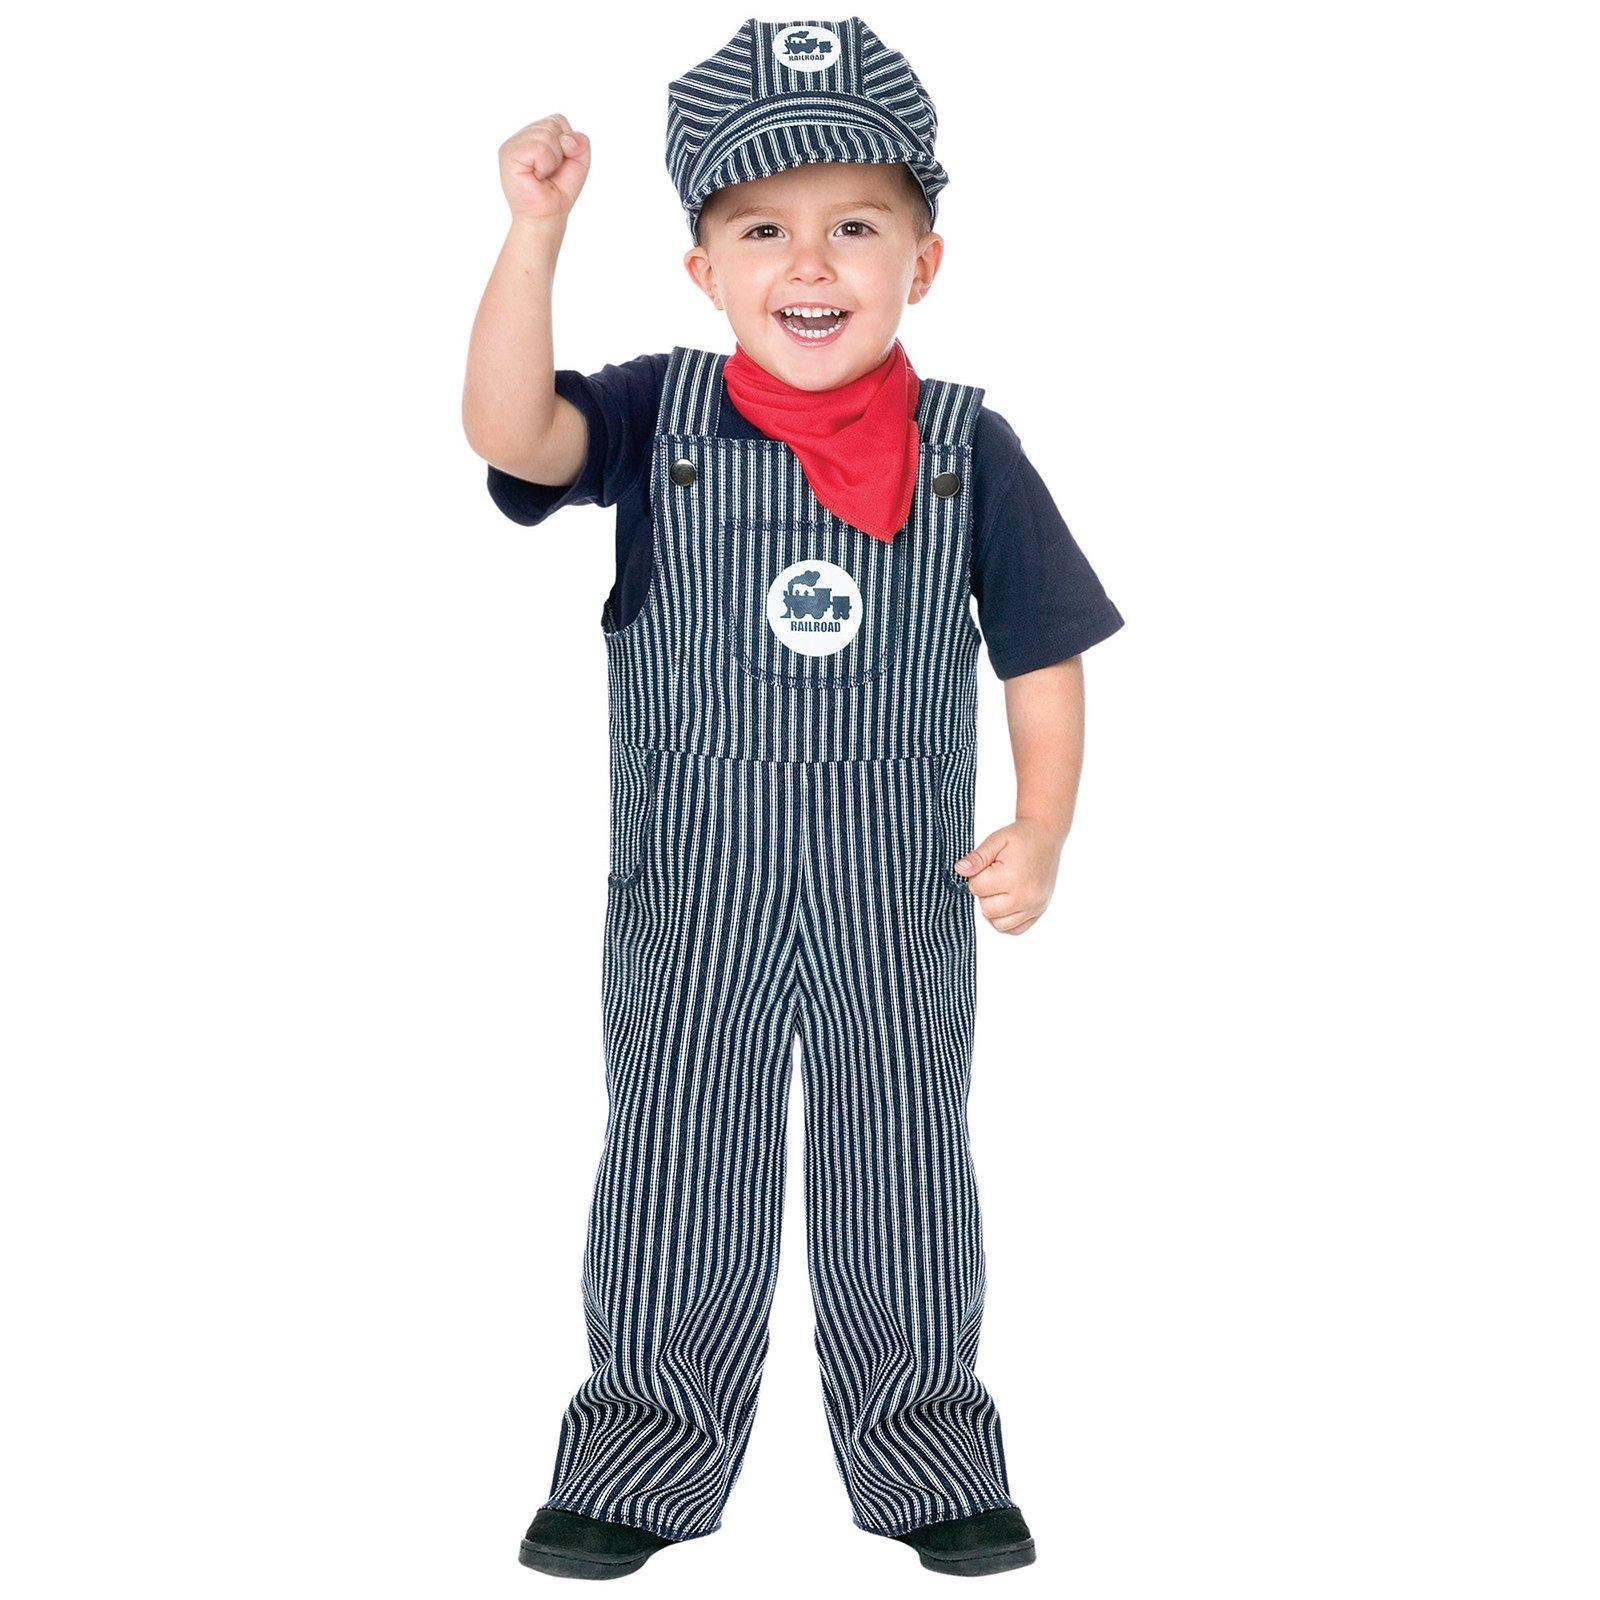 Train Engineer Suit Toddler / Child Costume Small (4-6)